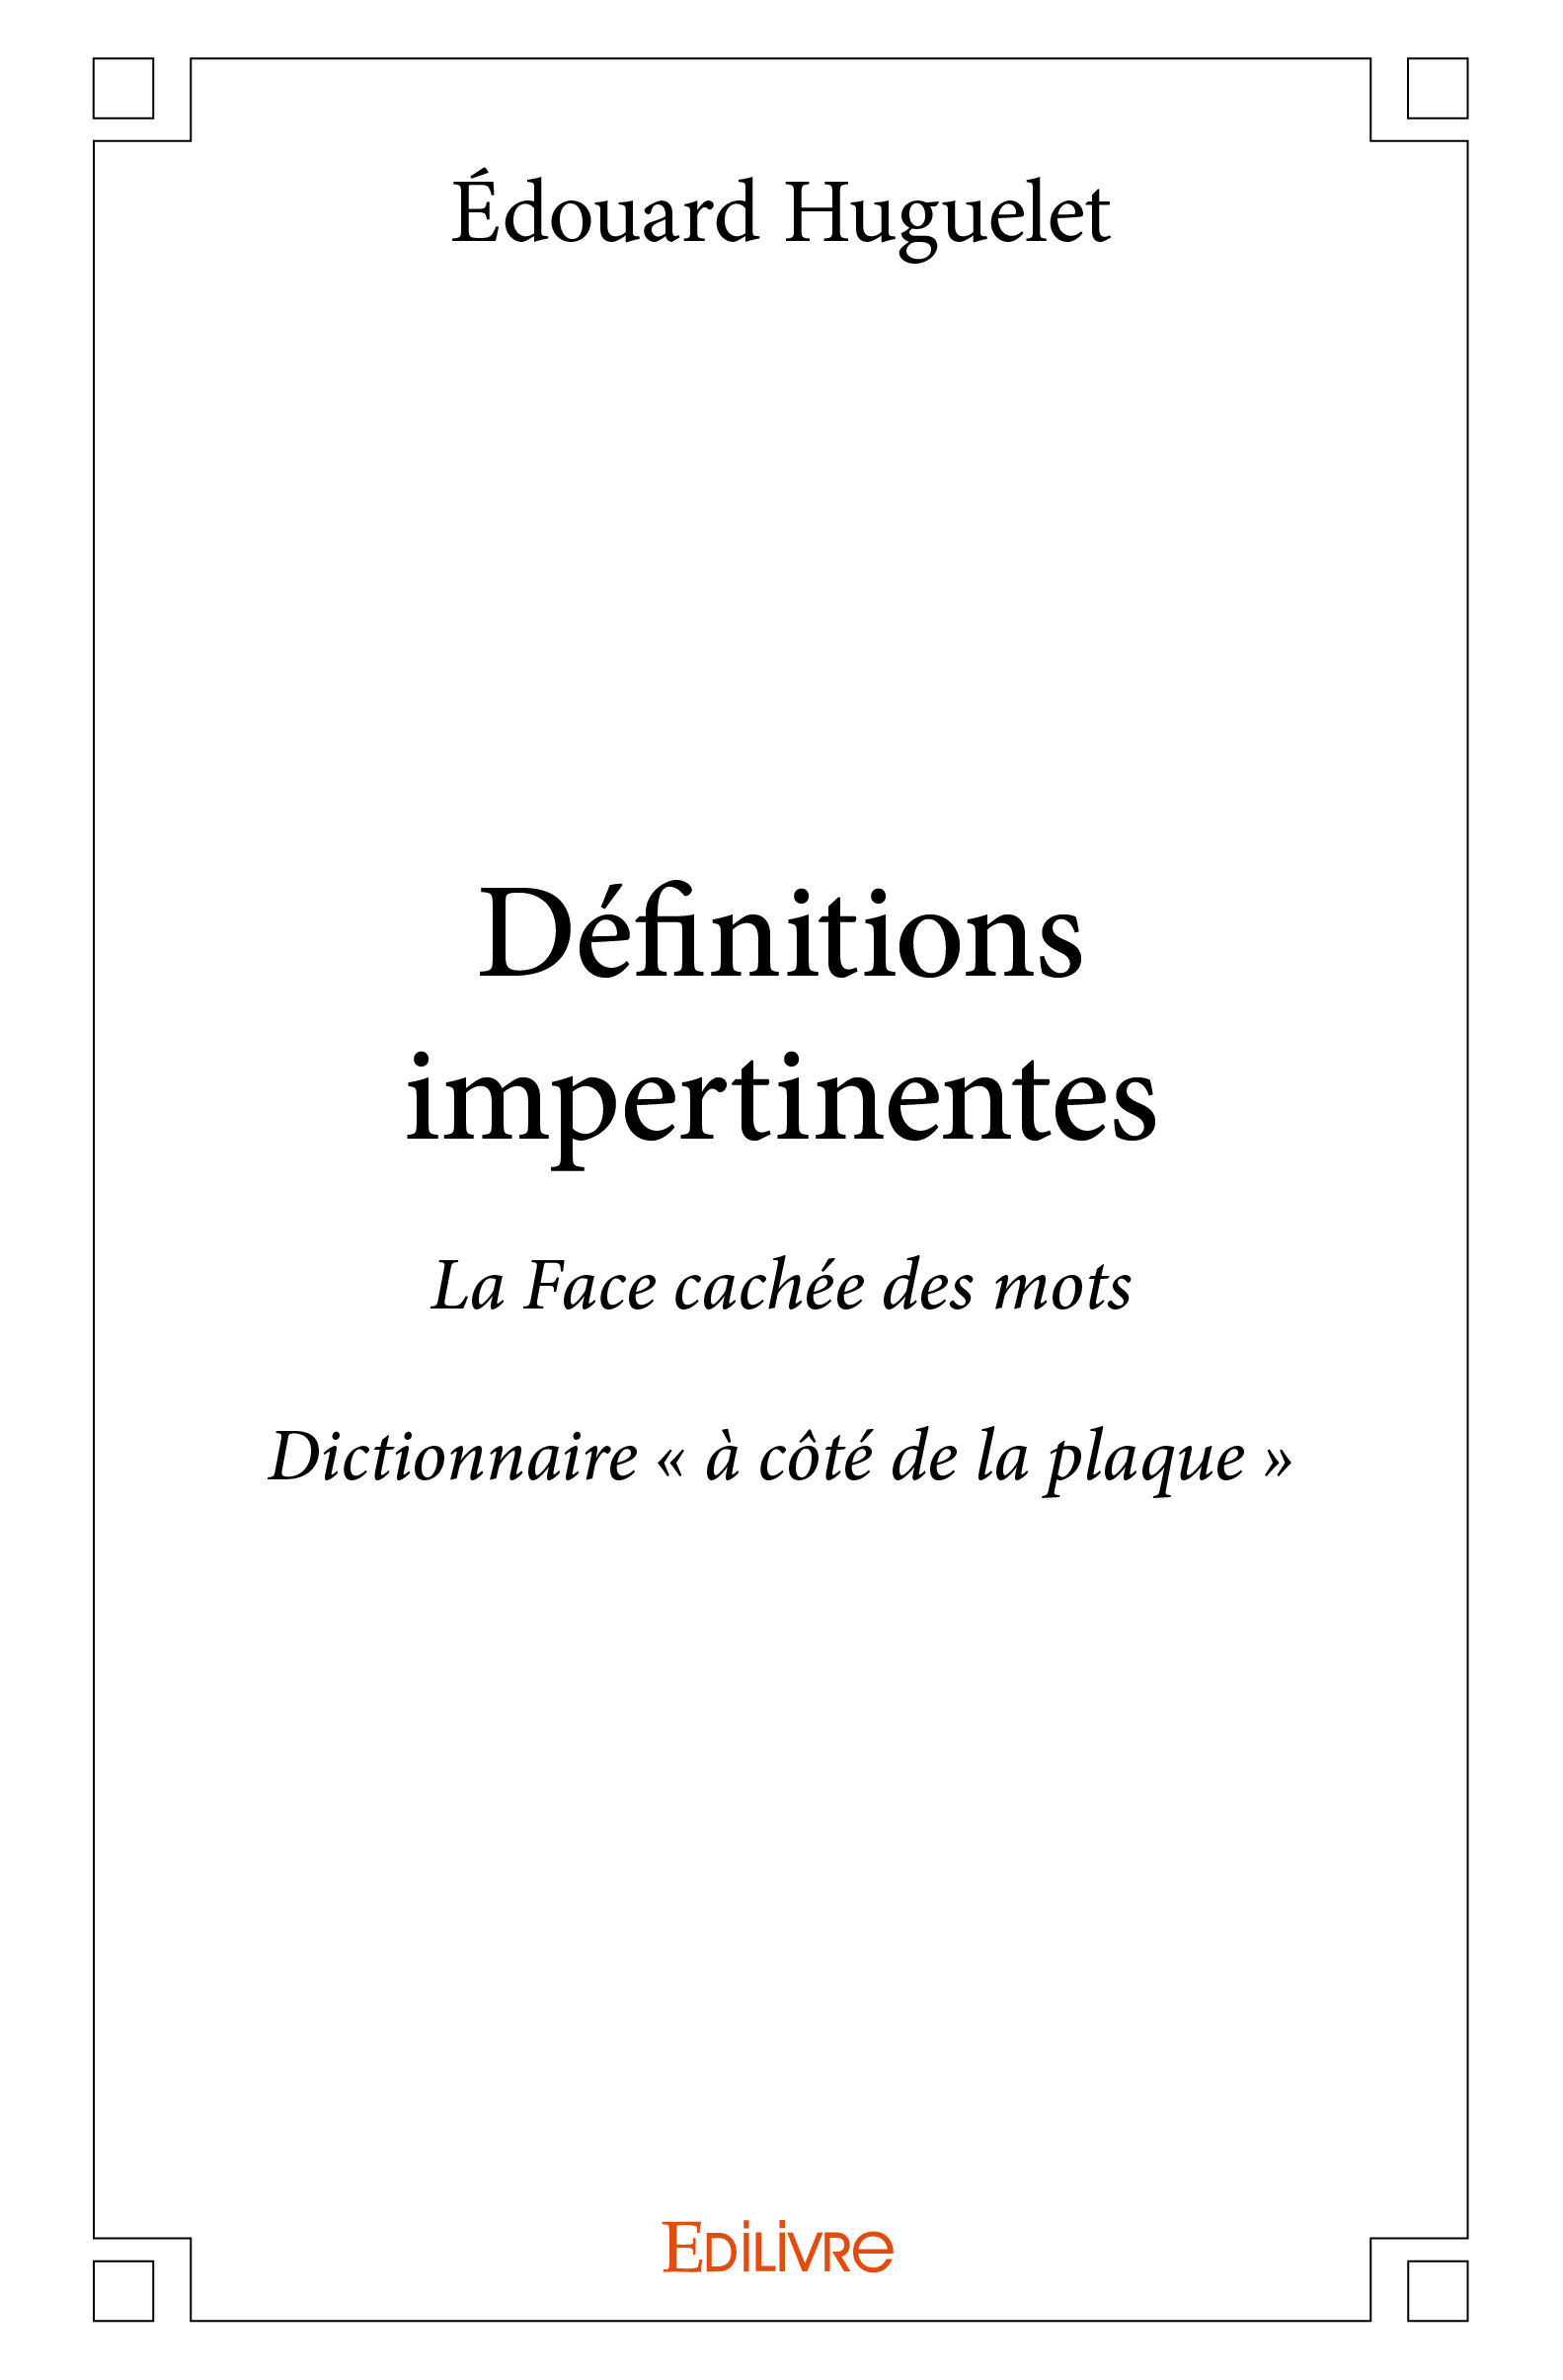 DEFINITIONS IMPERTINENTES